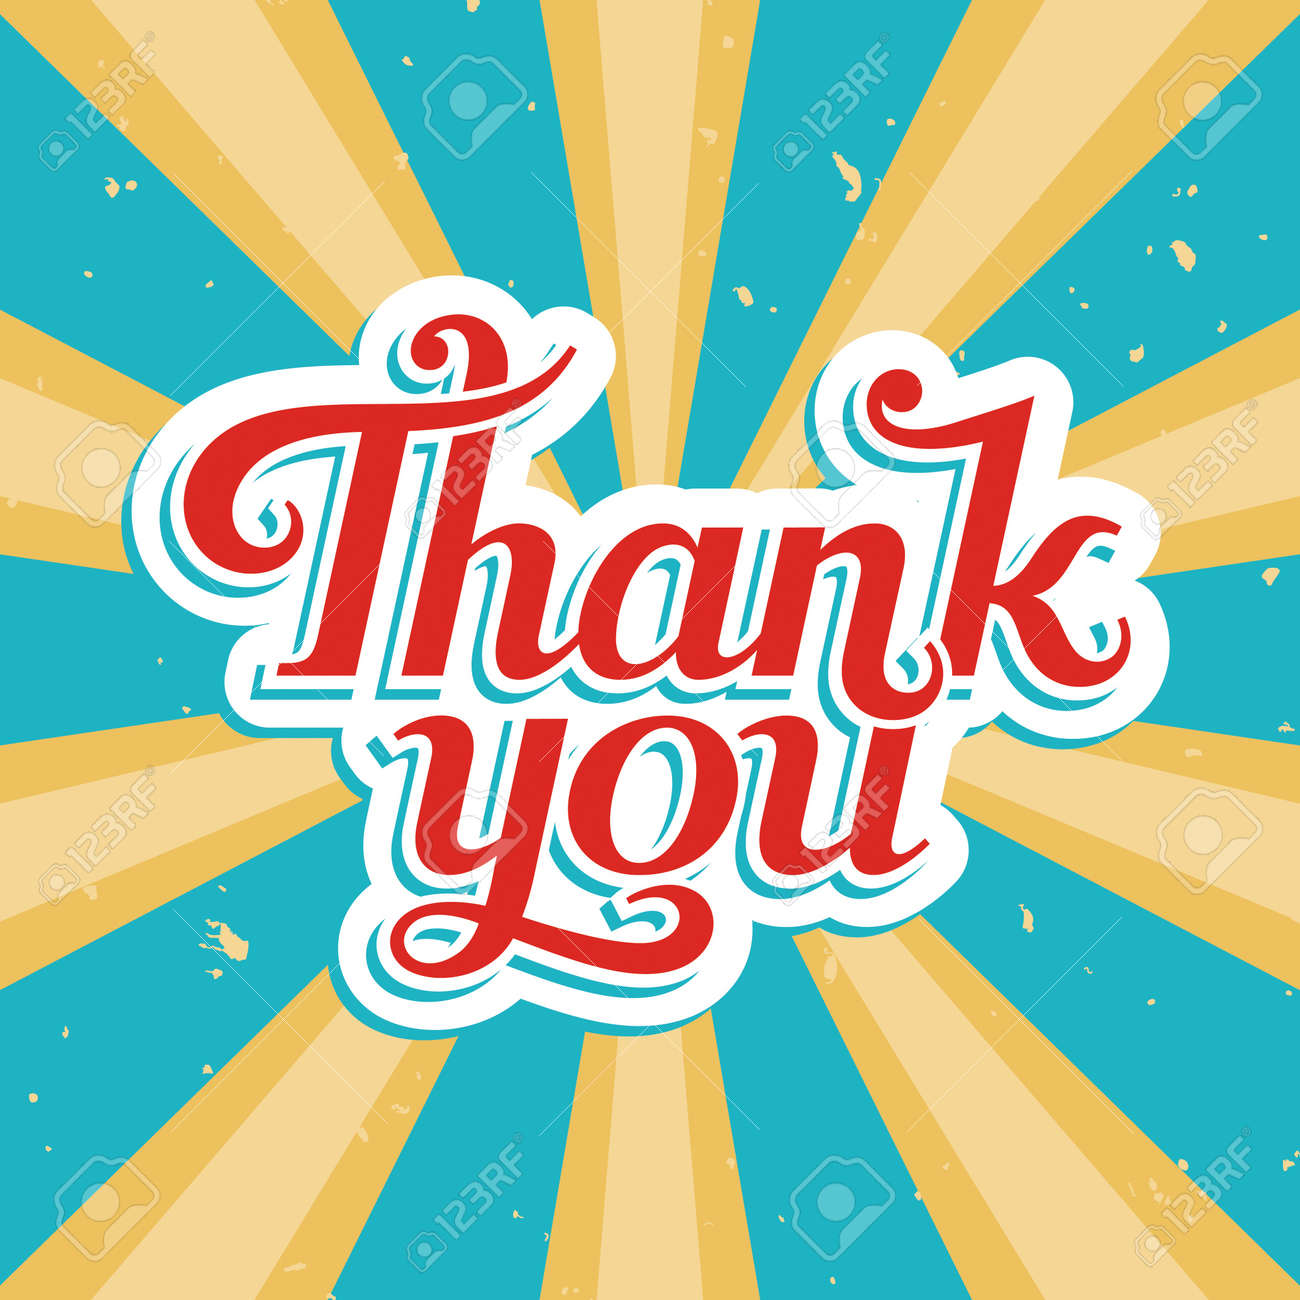 Thank You, vector illustration in old style - 19533582